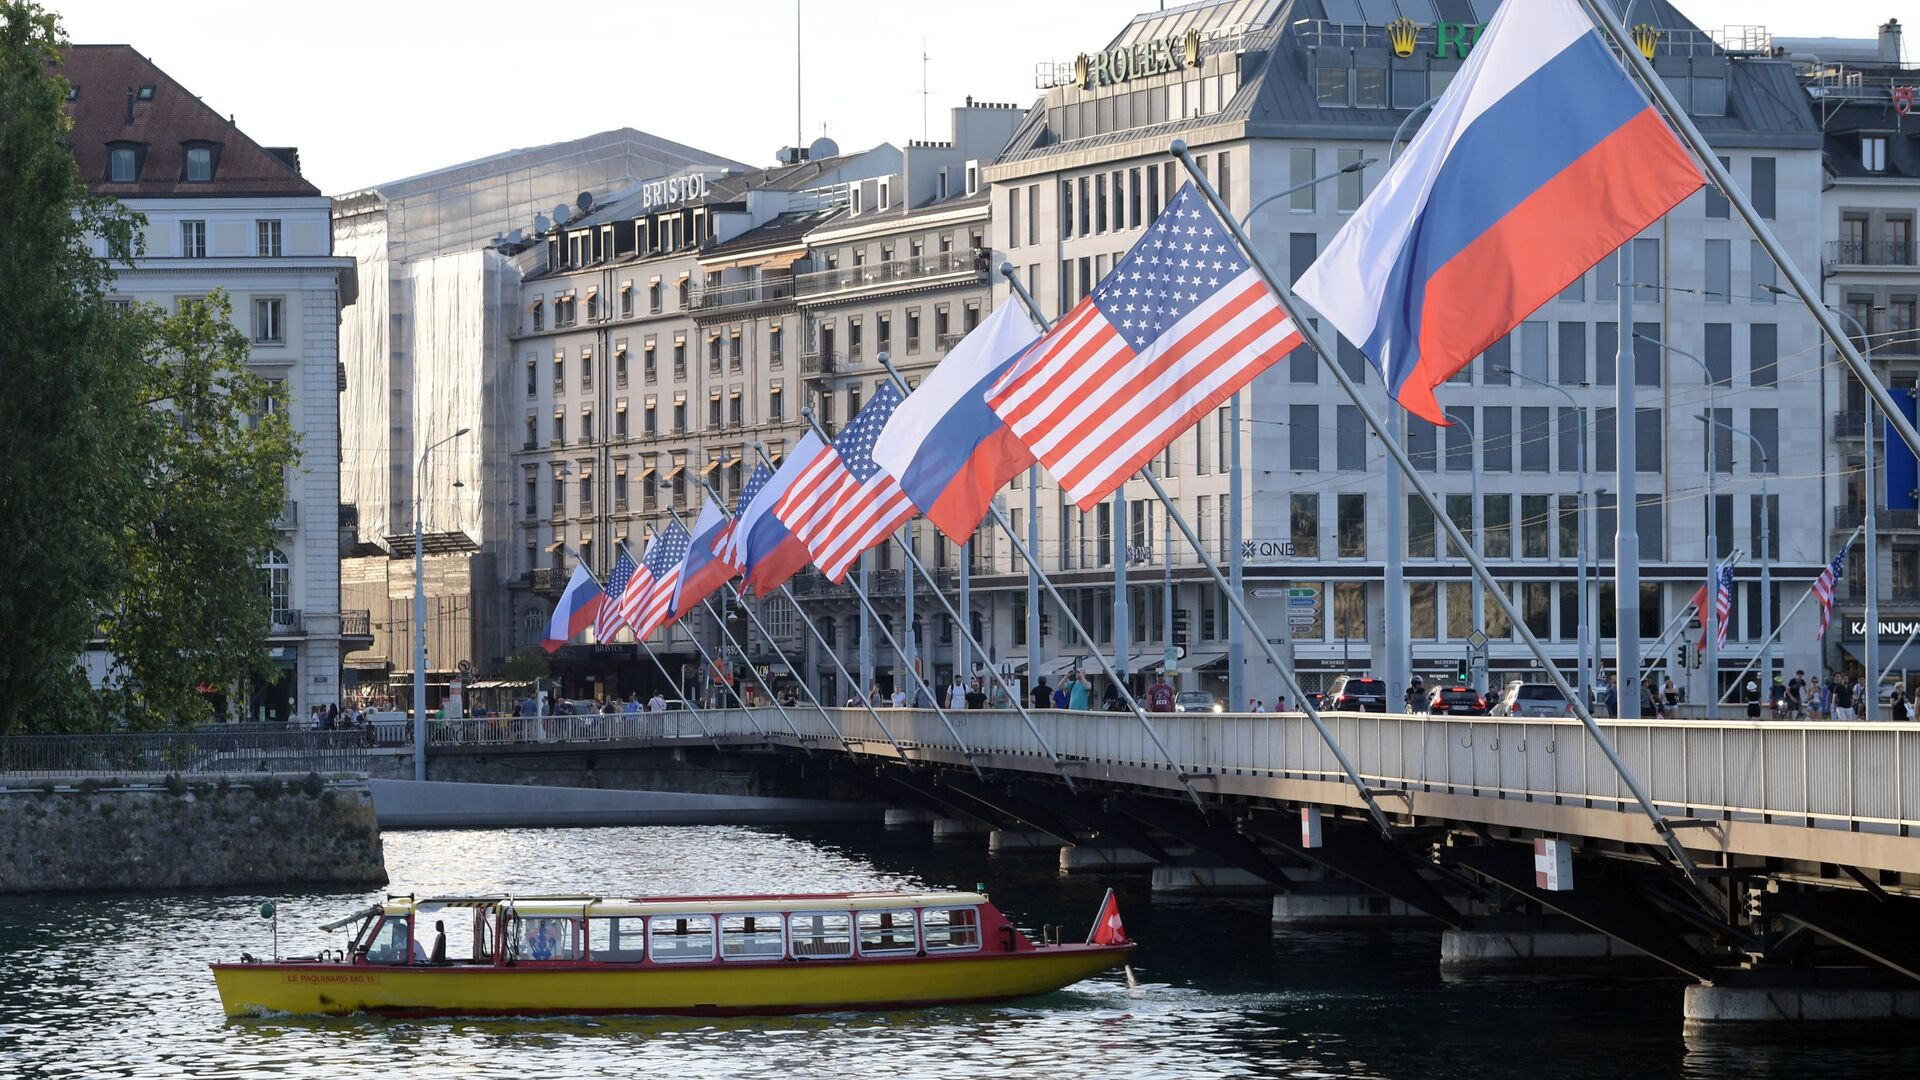 A view shows Mont-Blanc bridge decorated with flags of the USA and Russia ahead of the June 16 summit between U.S. President Joe Biden and Russian President Vladimir Putin, in Geneva, Switzerland - Sputnik International, 1920, 28.07.2021